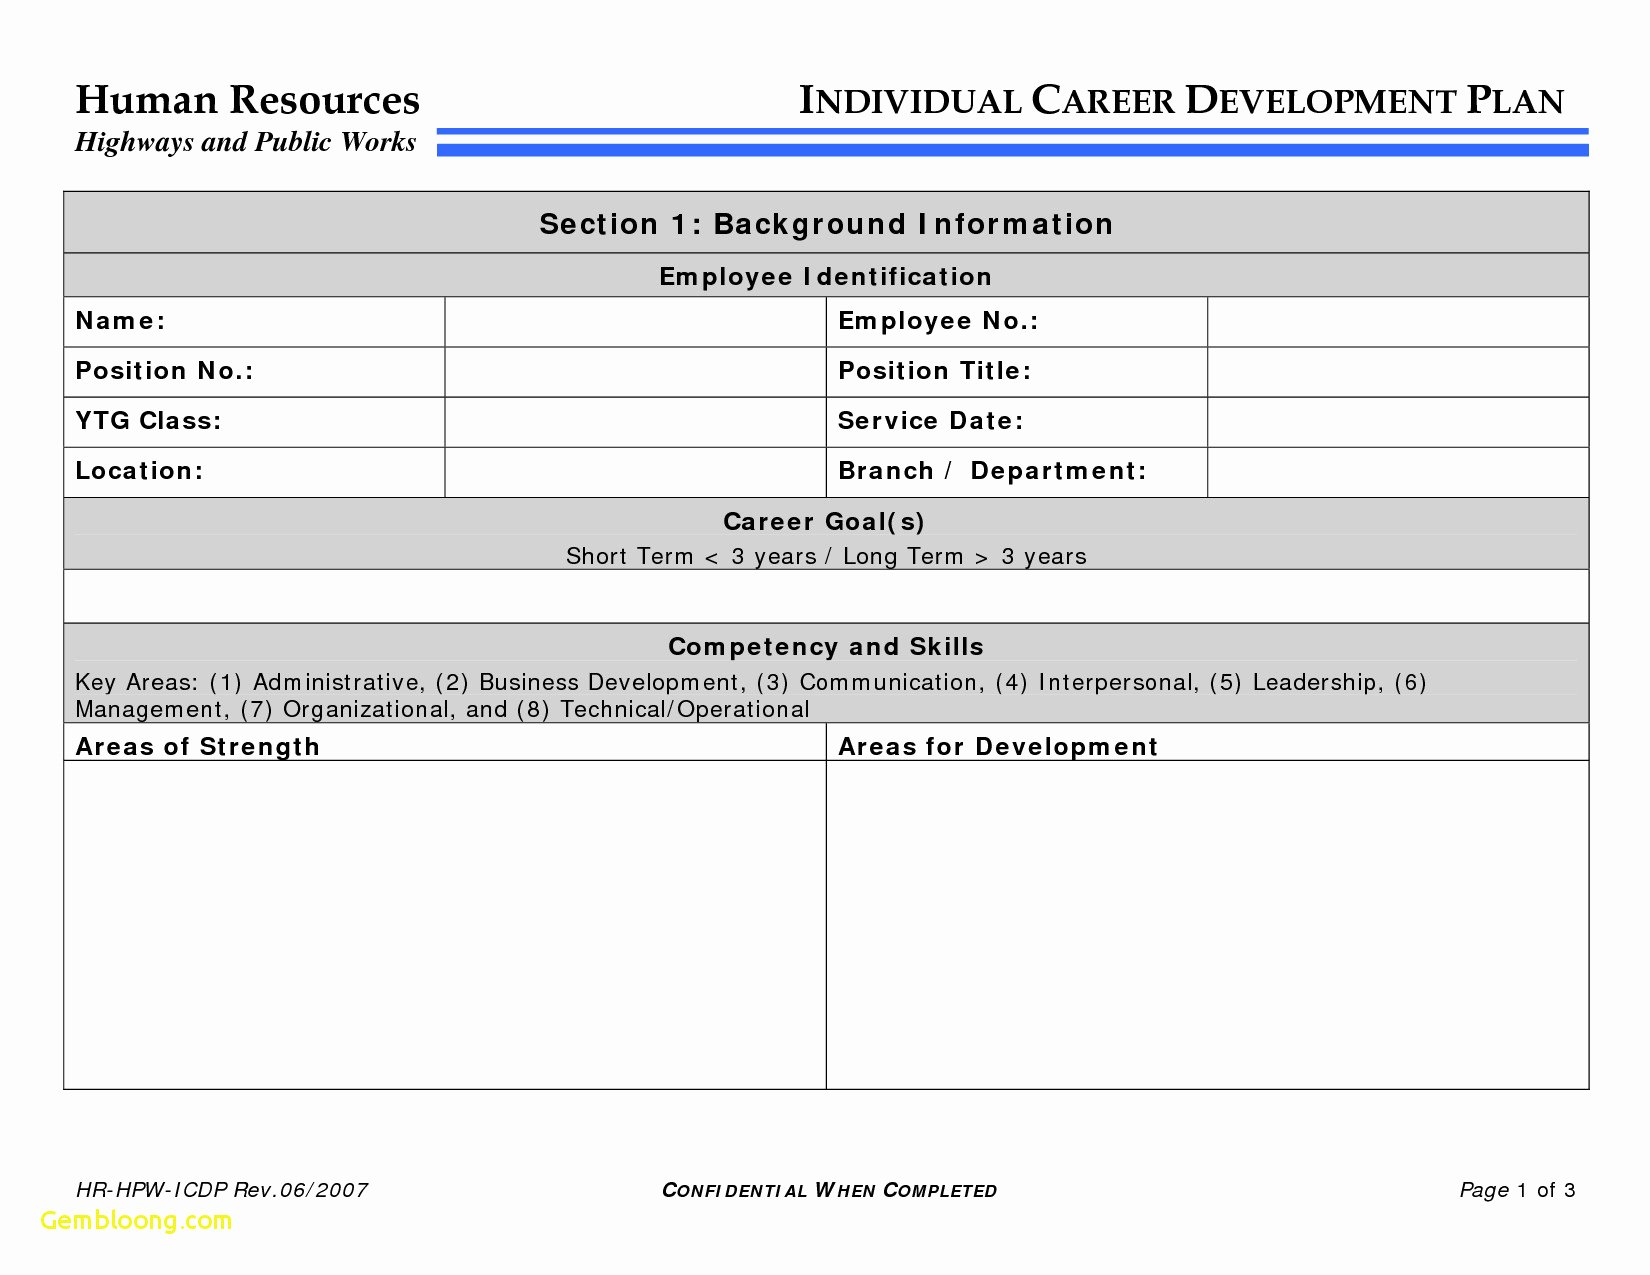 Career Development Plan Template Inspirational Career Development Plan Templates Beautiful 26 Career